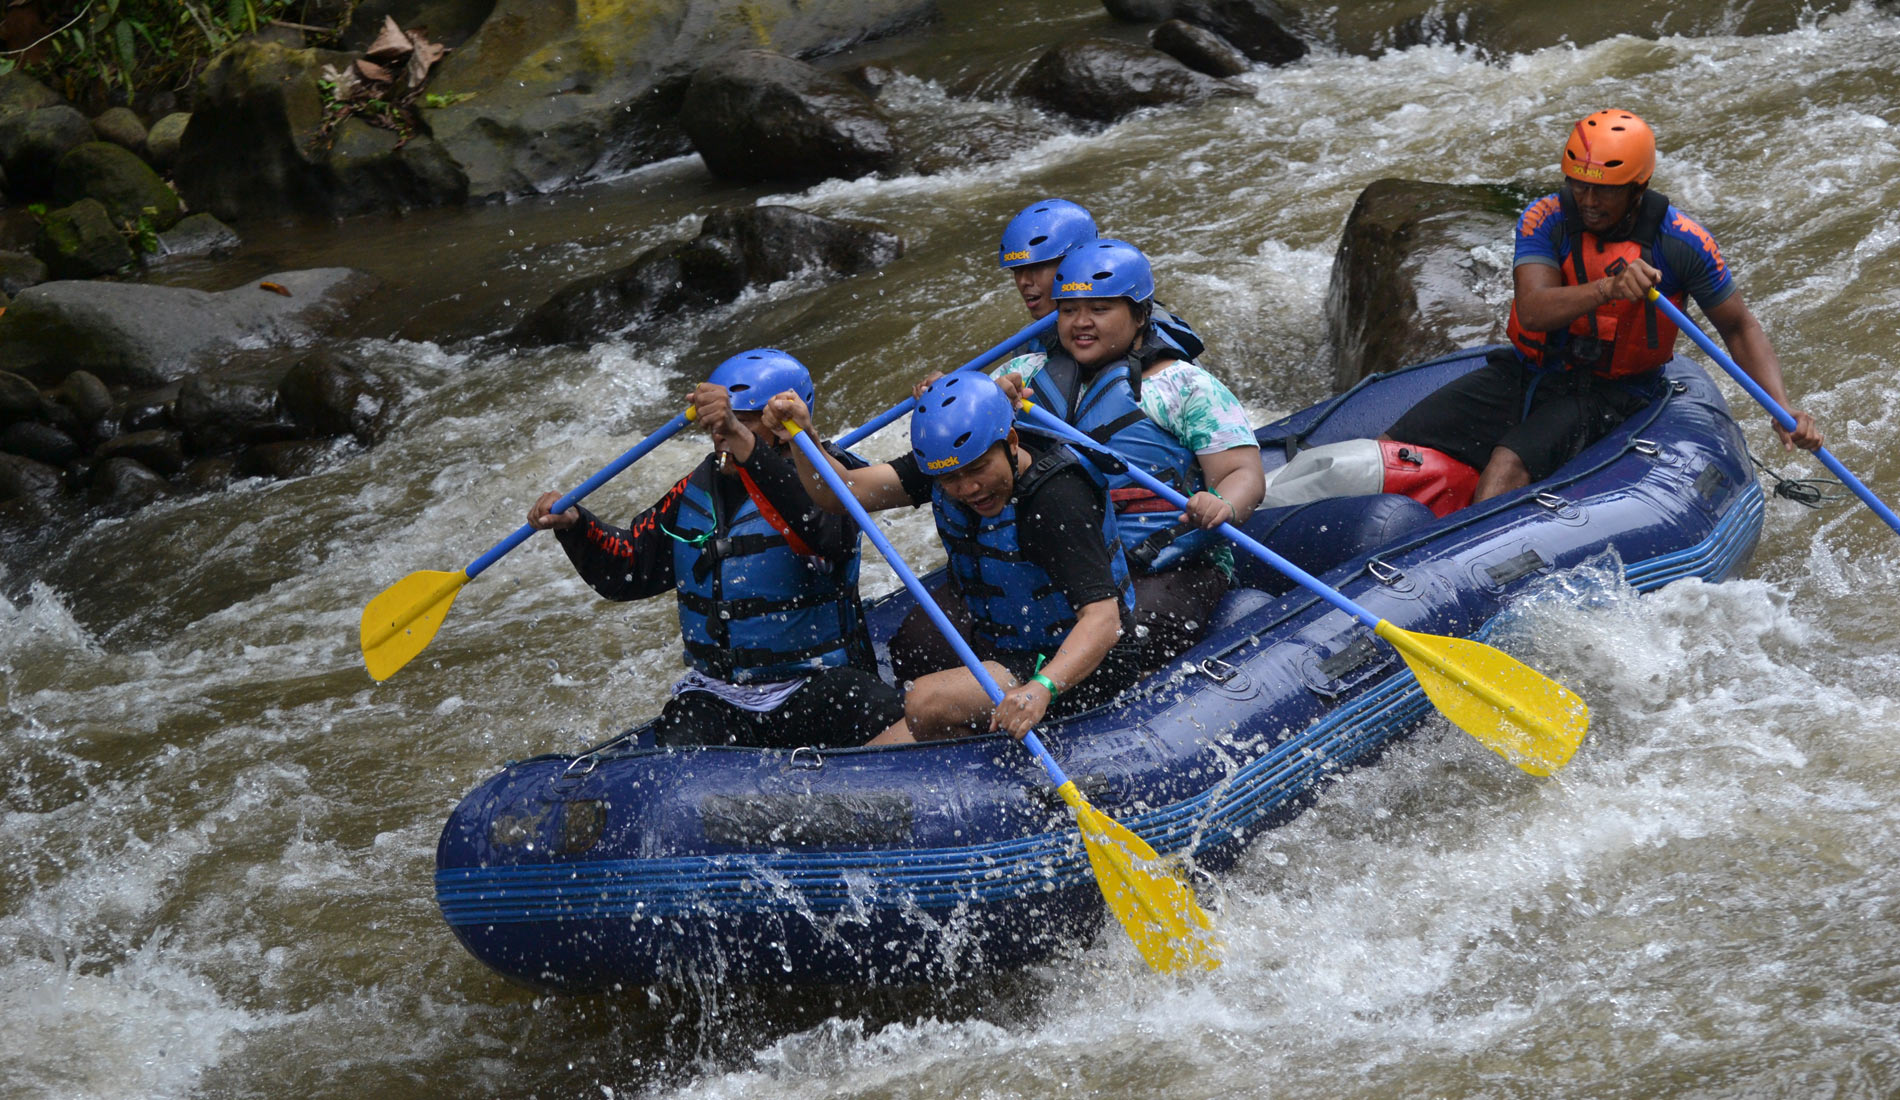 Rafting Sobek Ayung River - Bali Private Transport and Tour in Bali